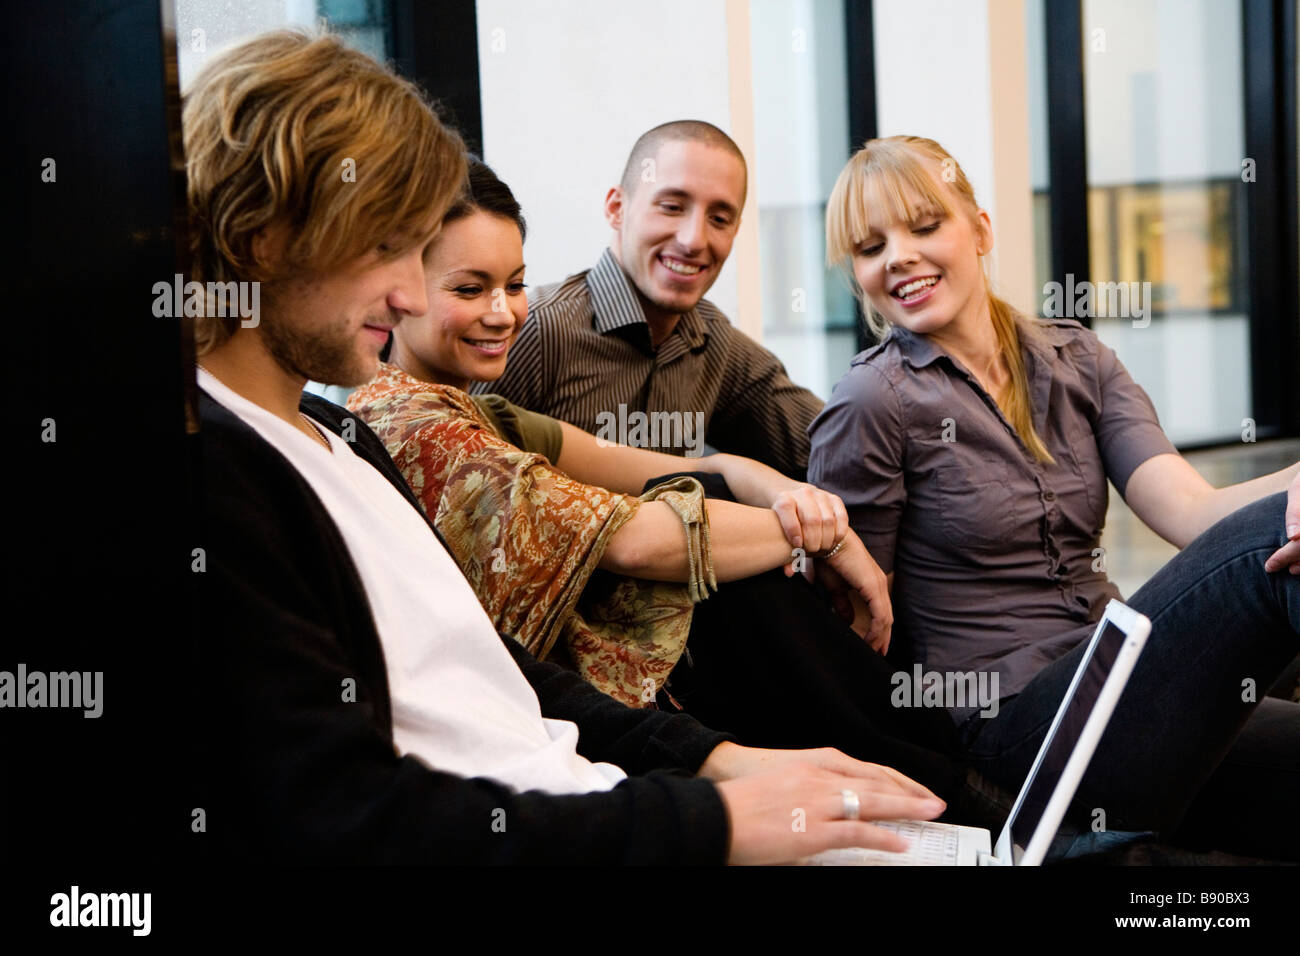 Student life Sweden. - Stock Image